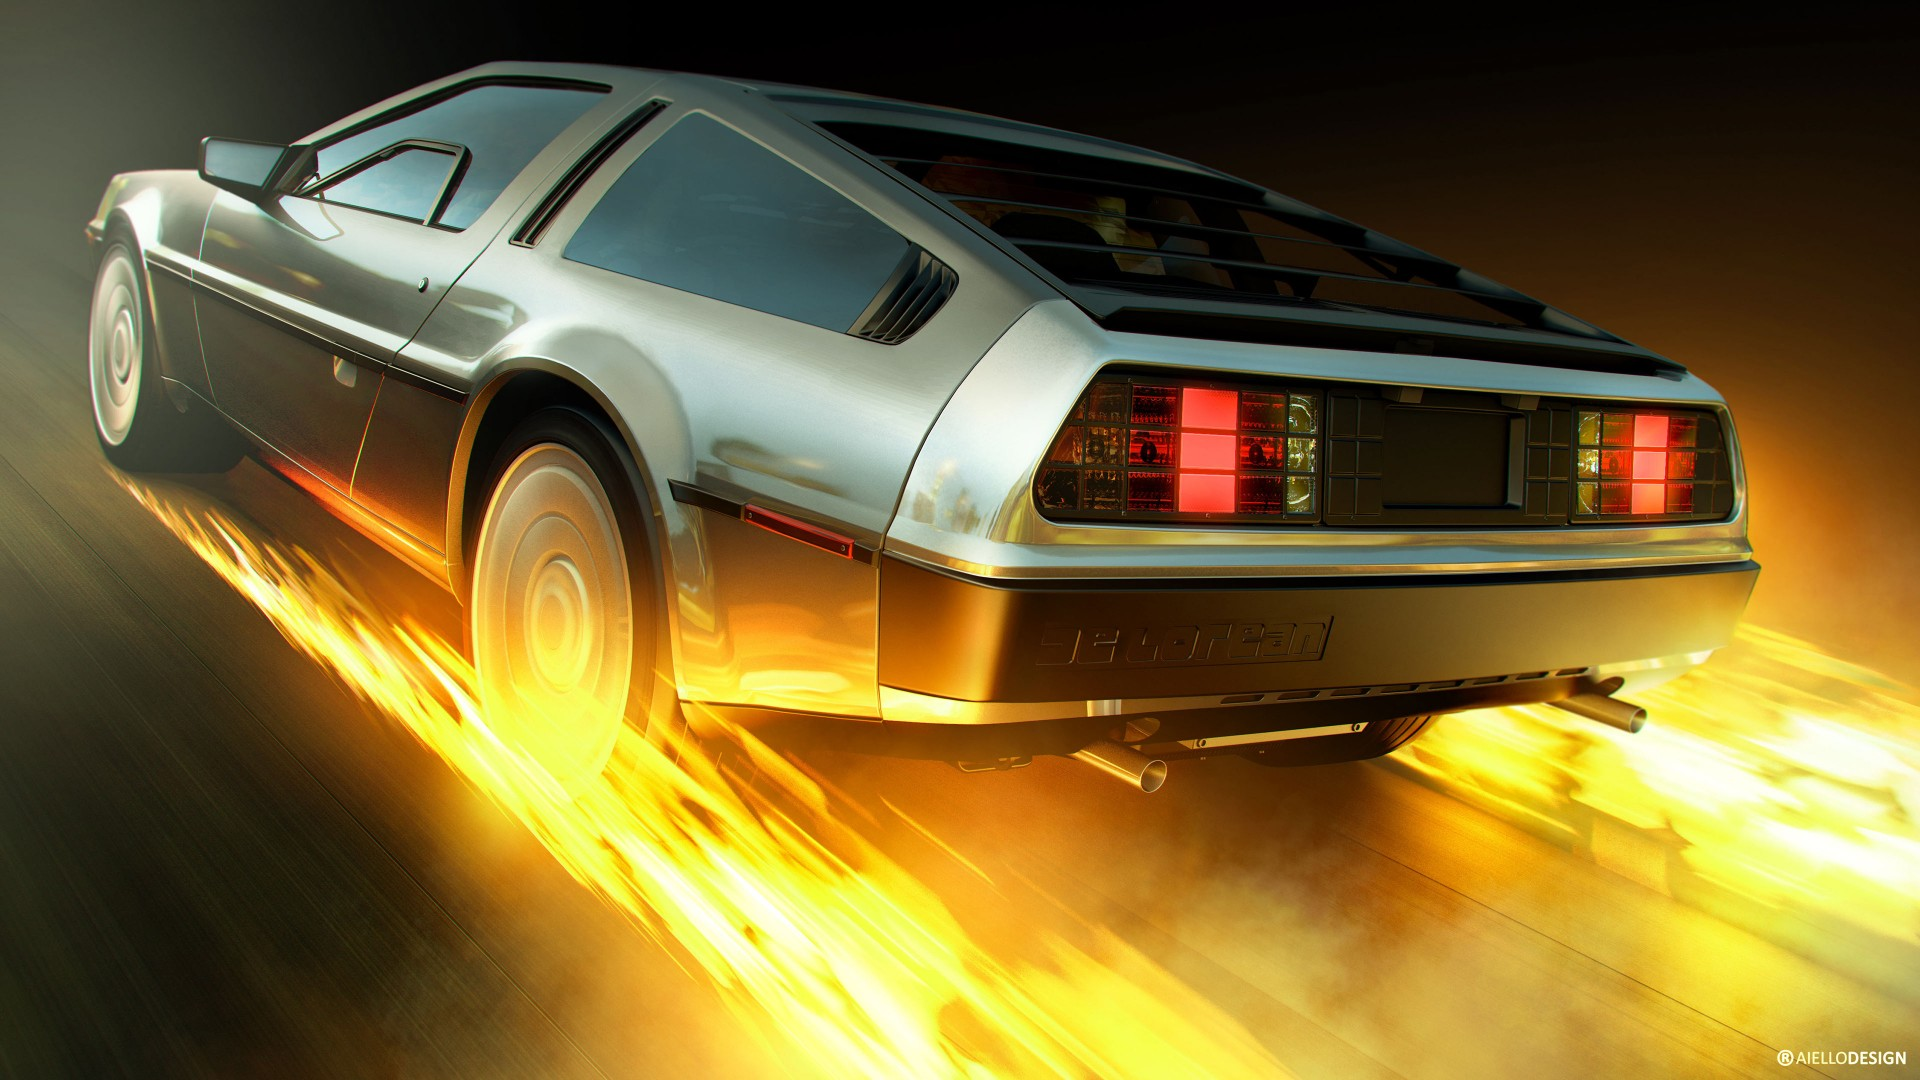 Back To The Future Delorean 4k Wallpaper Hd Car Wallpapers Id